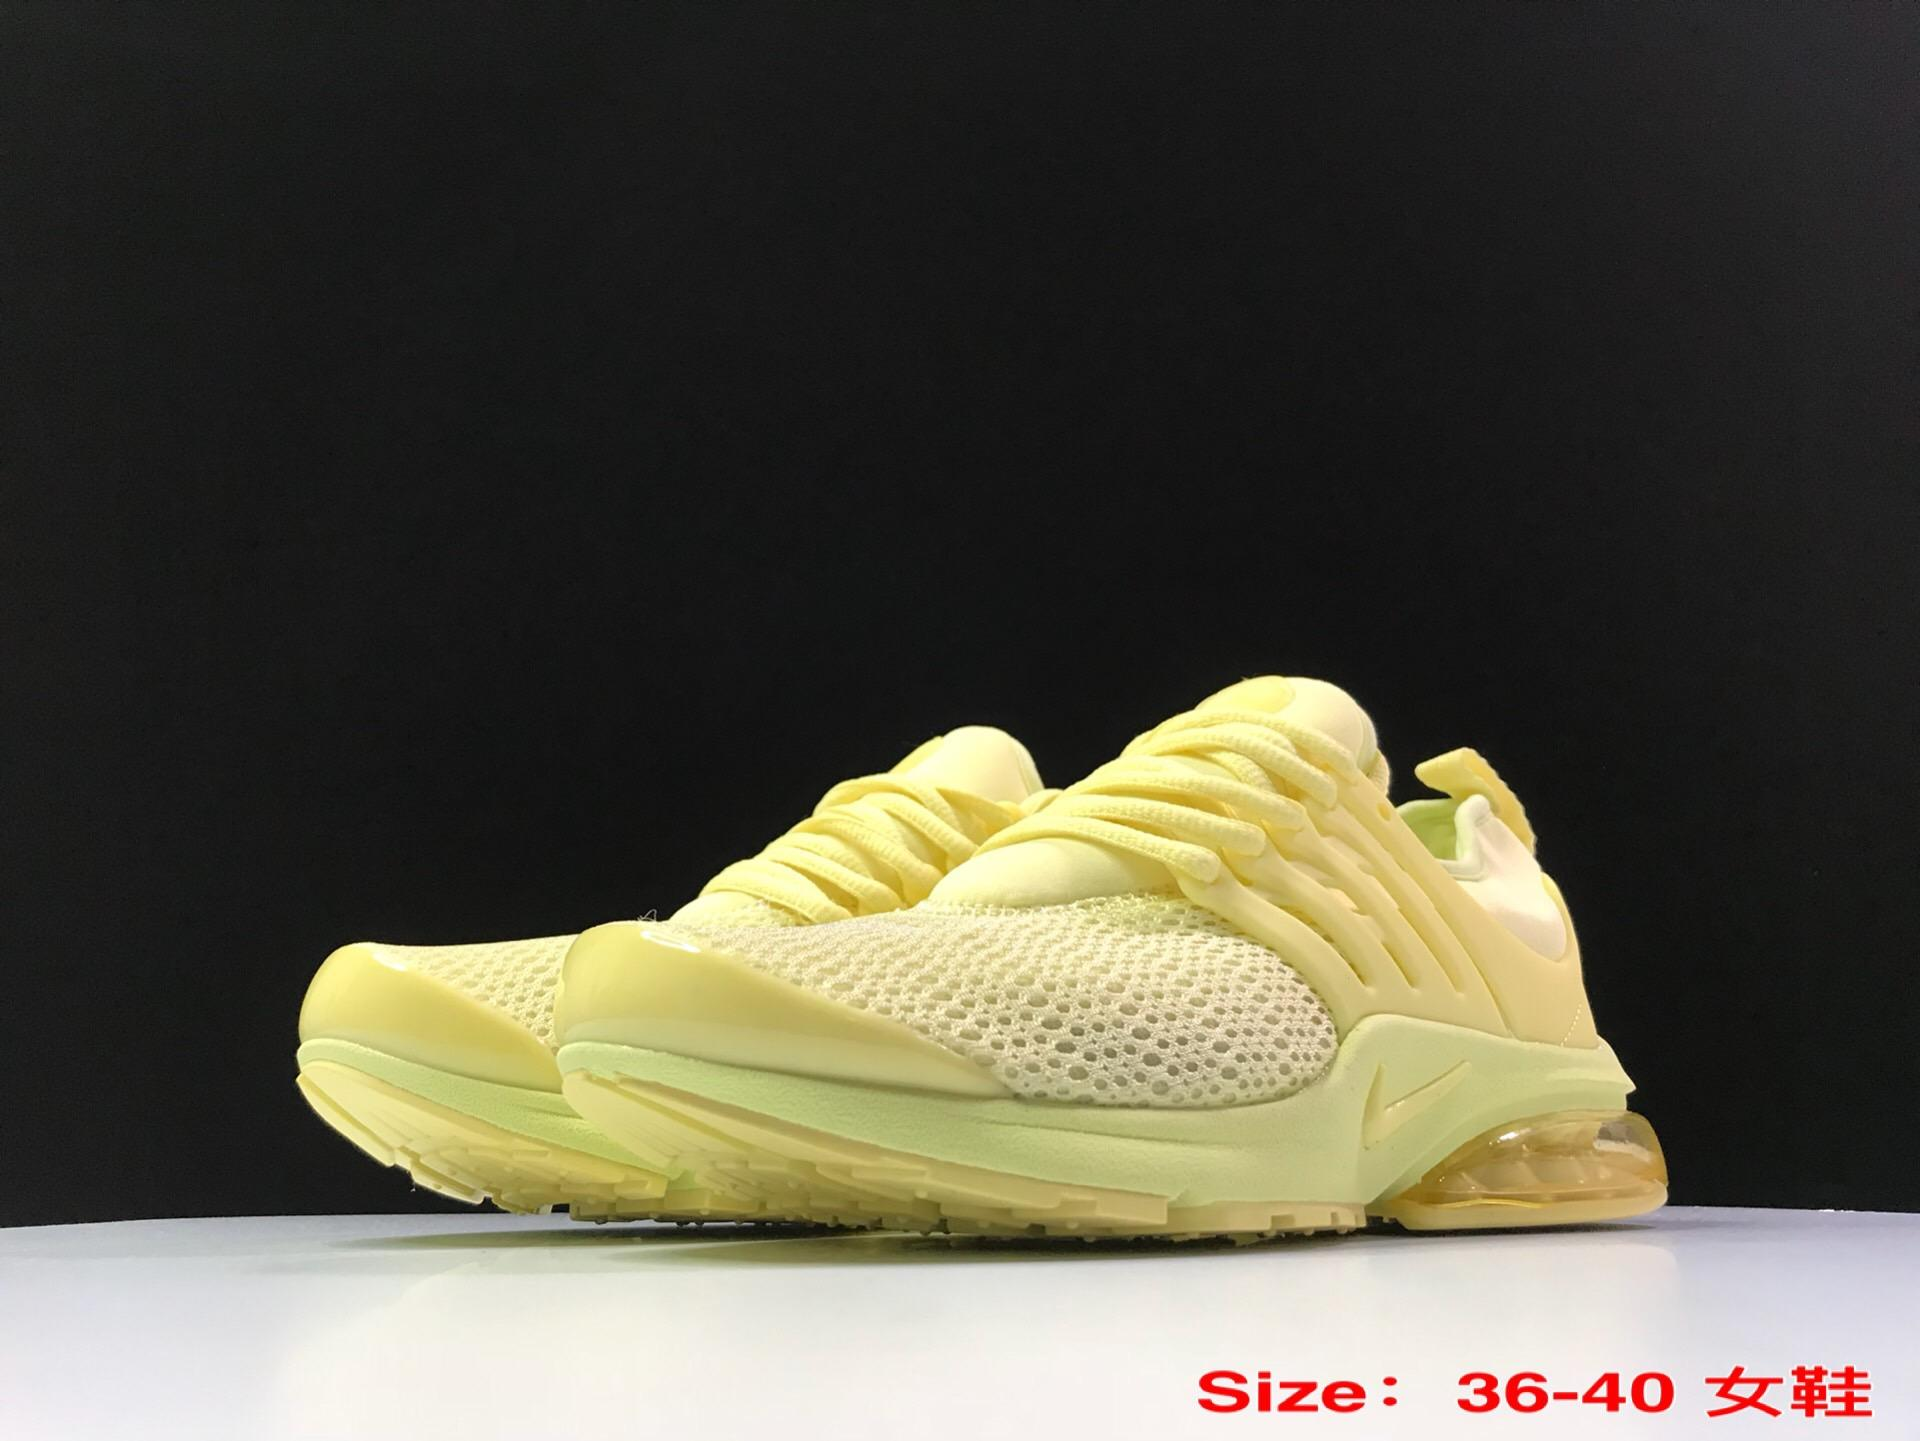 online store 3cbc1 a2e92 Hot selling model recommends Nike Air PRESTO TP QS Running Shoes ...